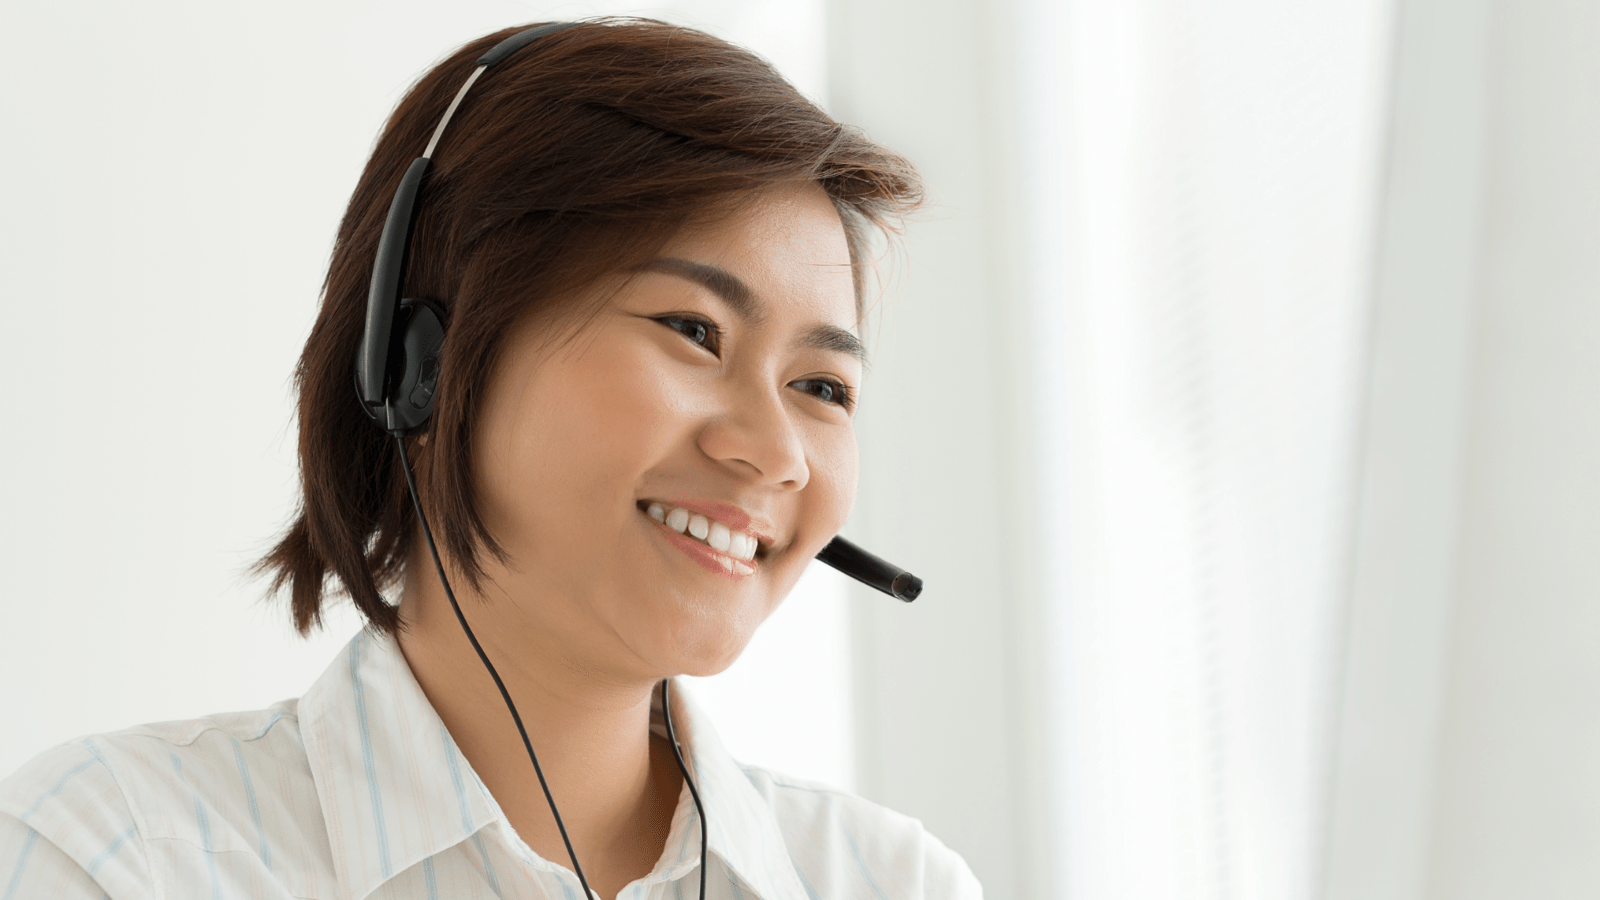 woman smiling while wearing a headset with a microphone